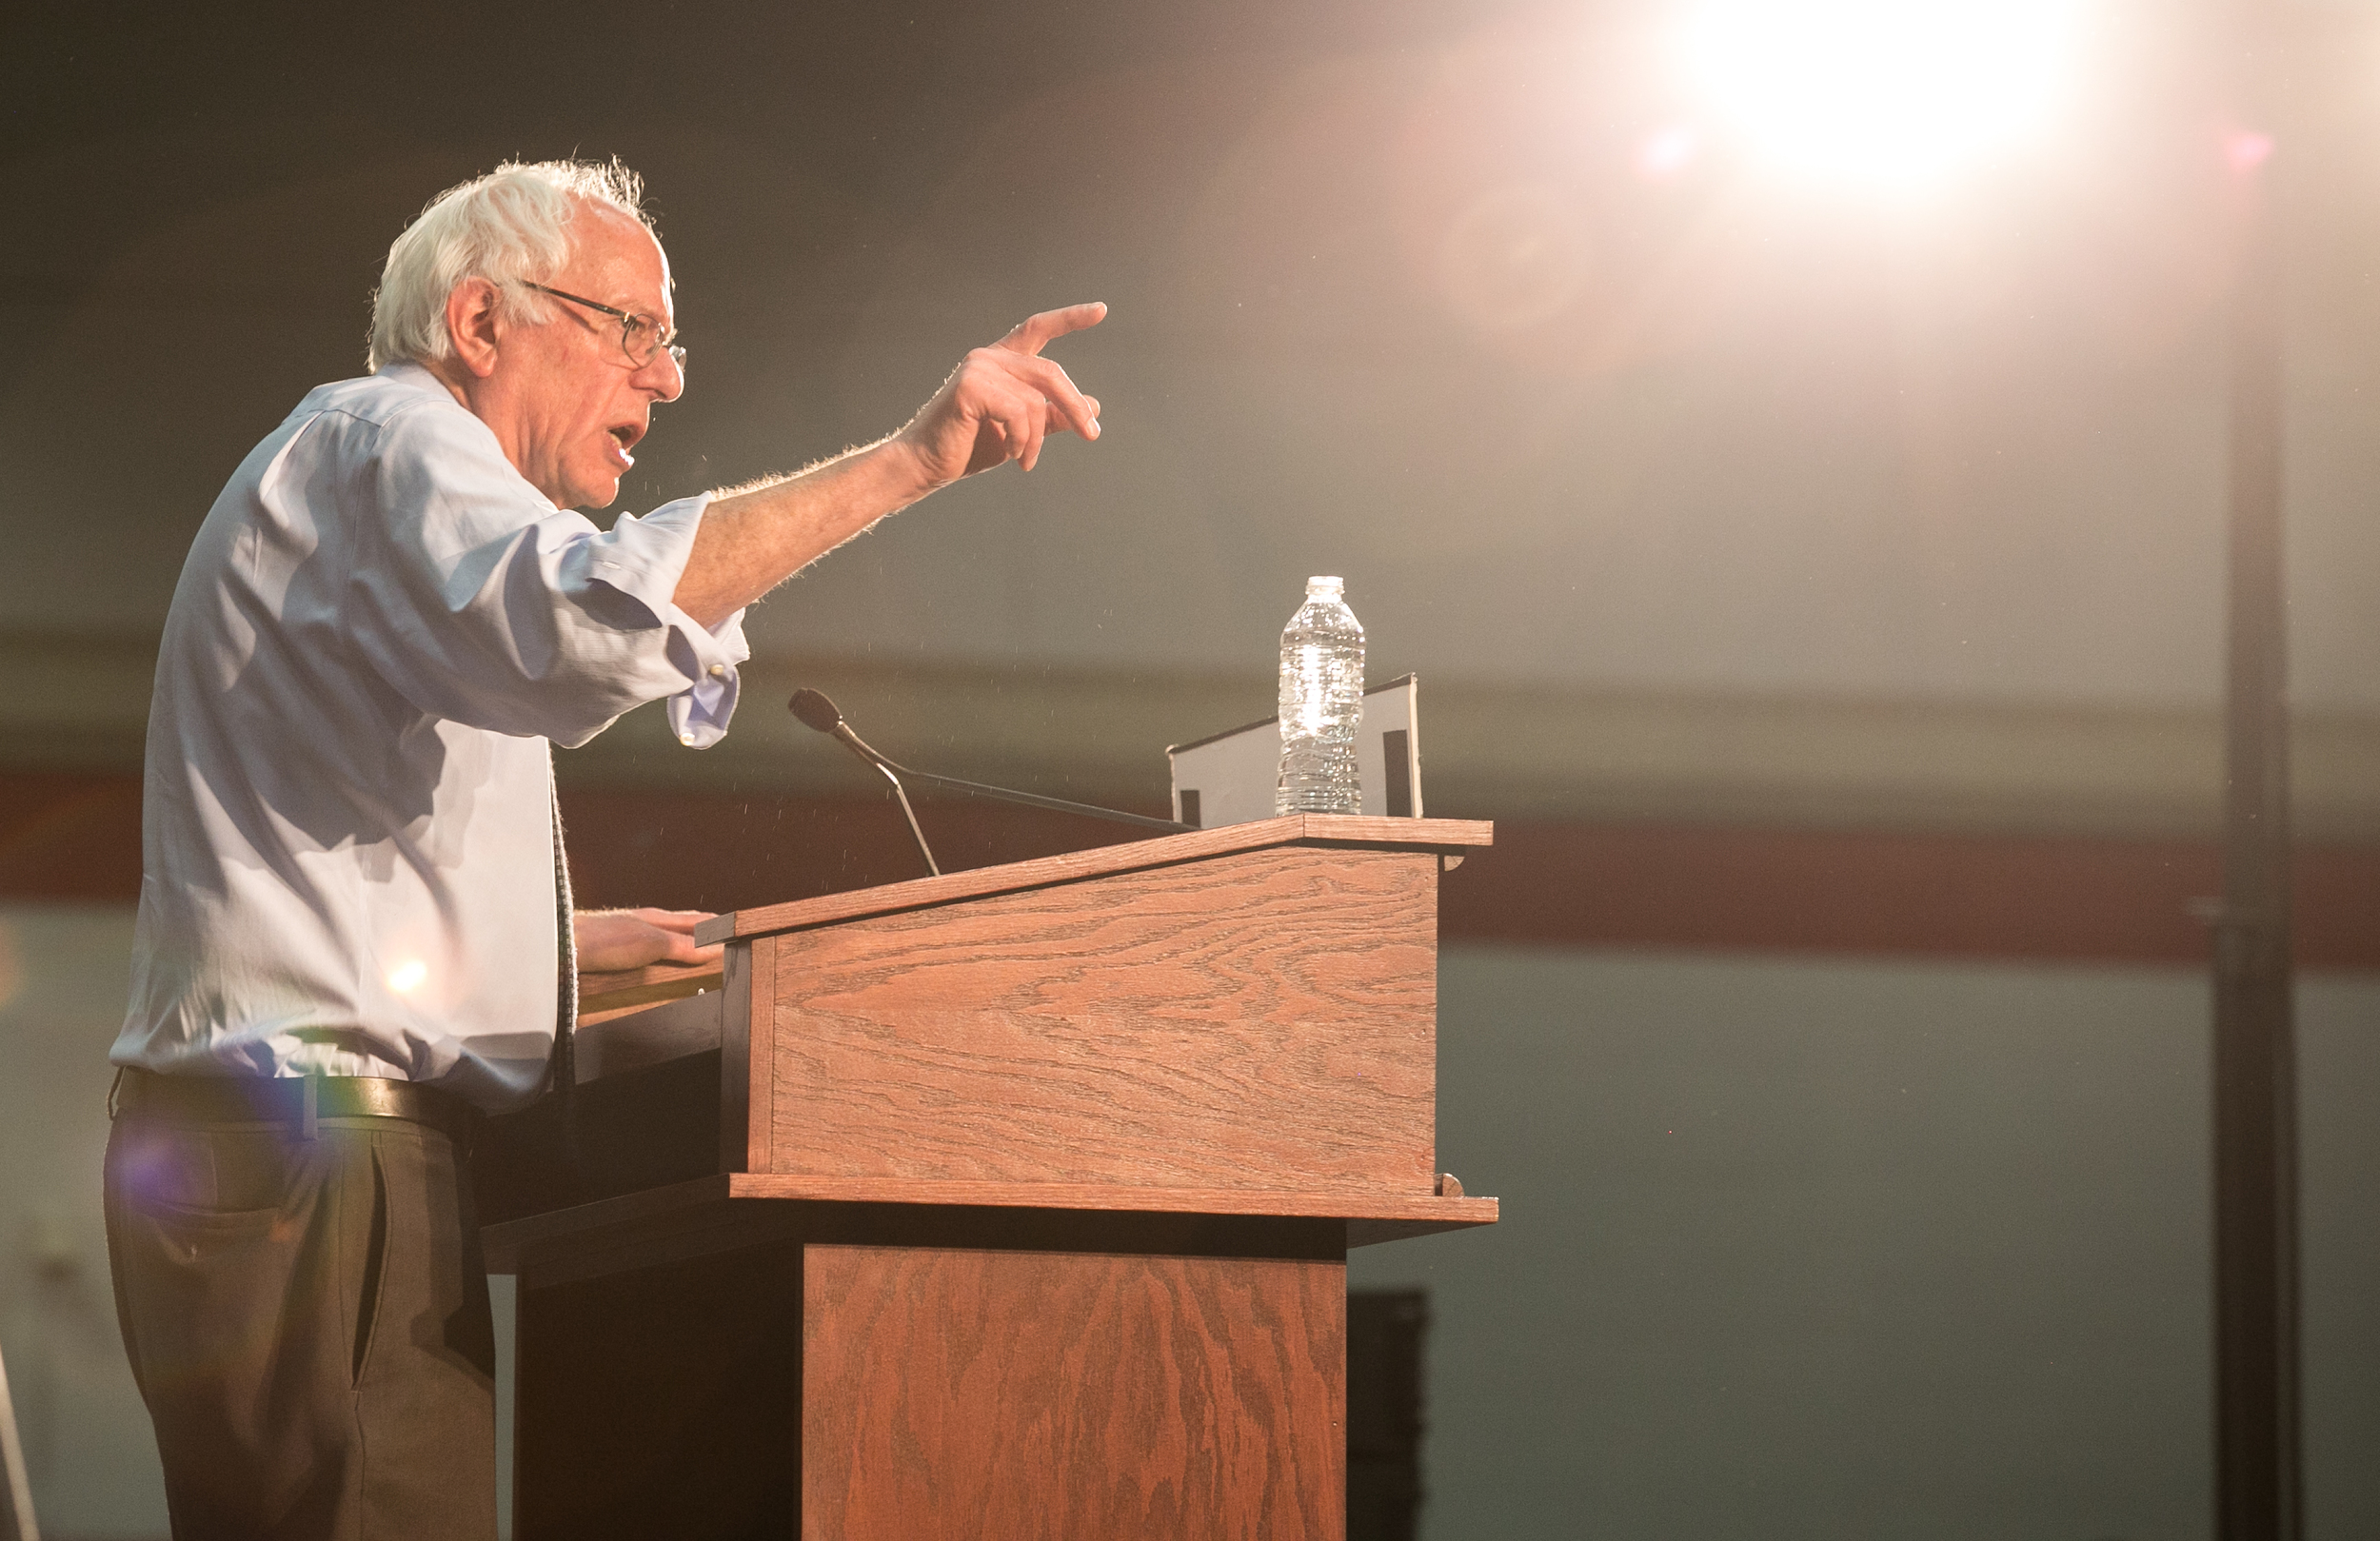 "February 29, 2016 - U.S. Senator Sanders D-Vt. speaks at a rally in Milton, Mass. on the eve of Super Tuesday. ""Ready for a radical idea? Well here it is,"" Sanders said. ""We're going to create an economy that works for everybody and not just the one percent."" Sanders and his grassroots movement will face off with Super PAC-funded Secretary of State Hillary Clinton in a battle over 11 states. The March 1 vote will consist of more than 800 delegates, or one third of the delegates needed to claim the democratic nomination in the U.S. presidential election.  ©Mike Schwarz"